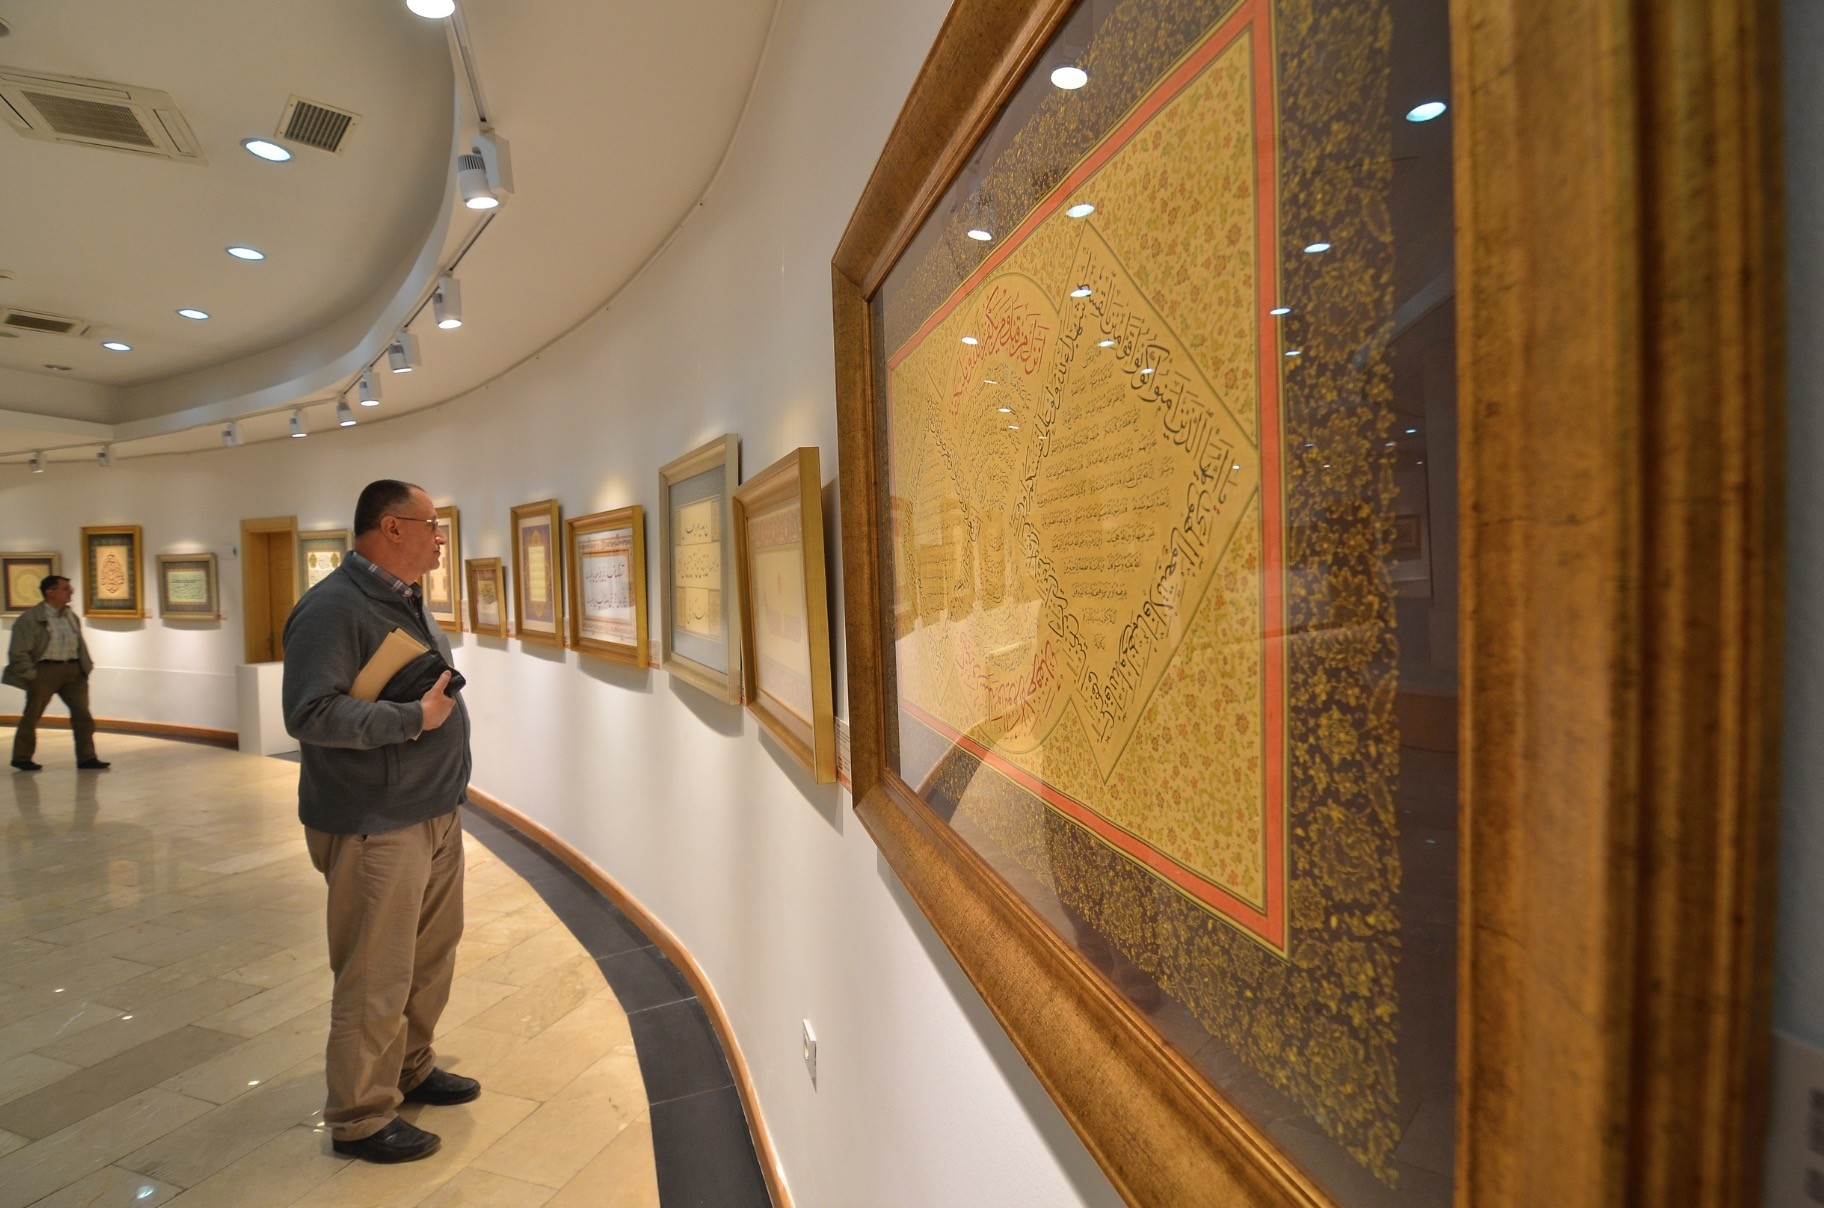 u201cThe Penu2019s Bountyu201d calligraphy and illumination exhibition will host visitors until June 15.